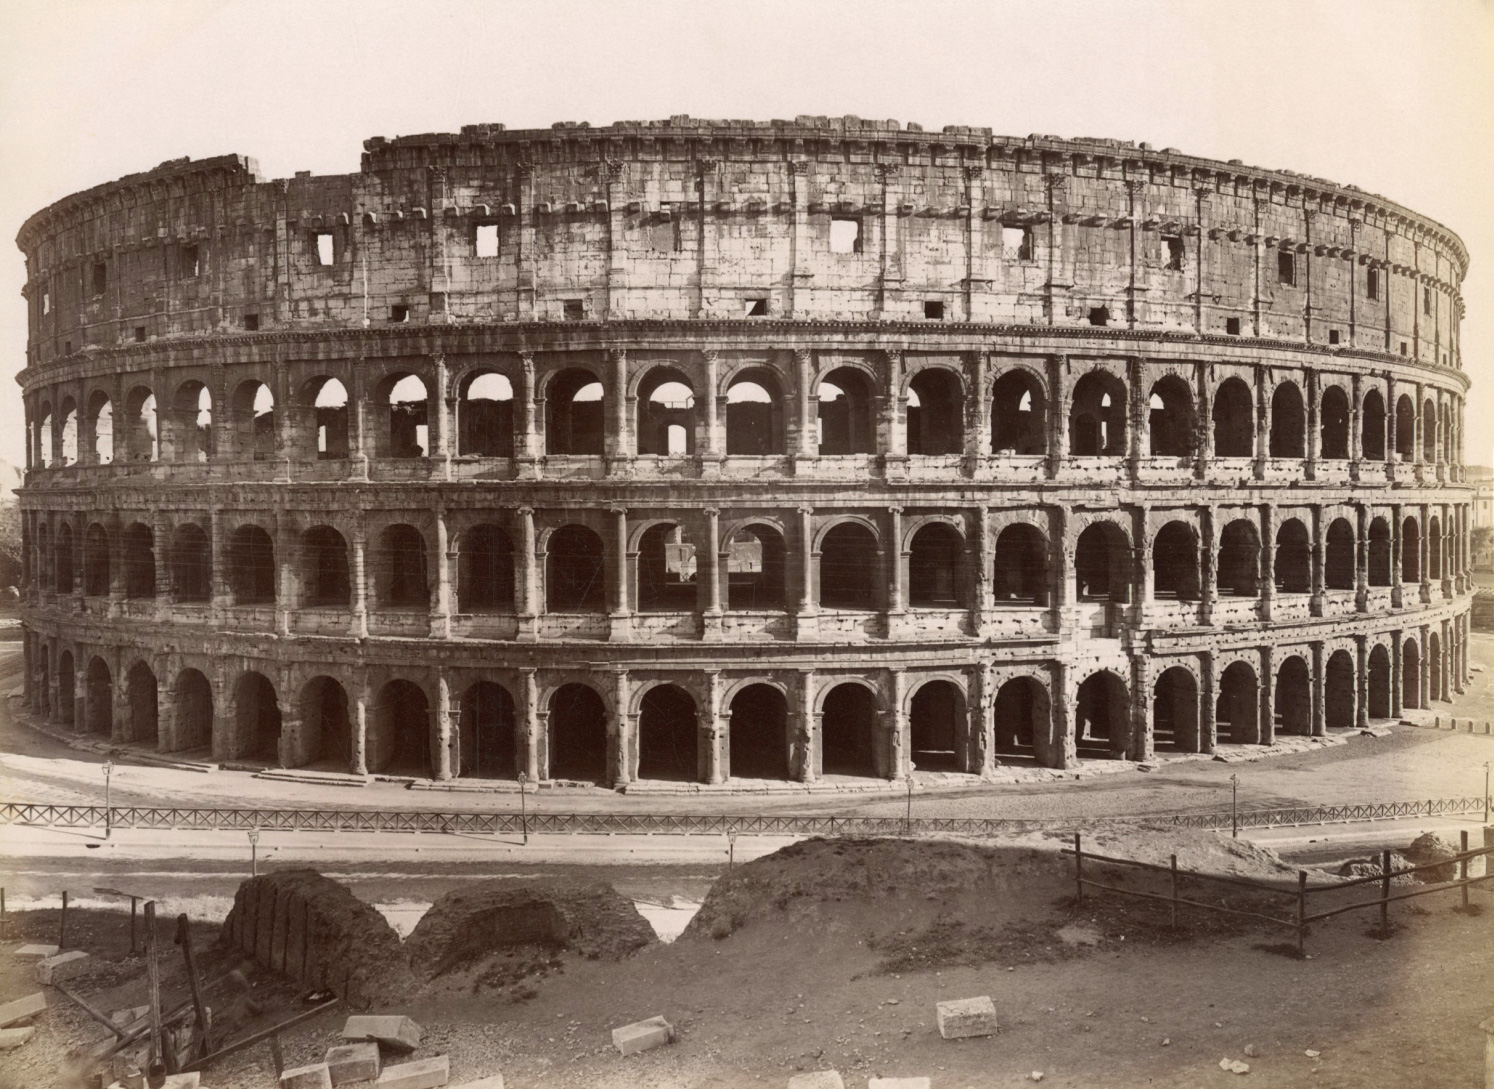 The Flavian Amphitheater, or the Colosseum, built by Flavius Vespasian and inaugurated by Titus in 80 CE.  Rome, Flavian Amphitheatre (Coliseum)